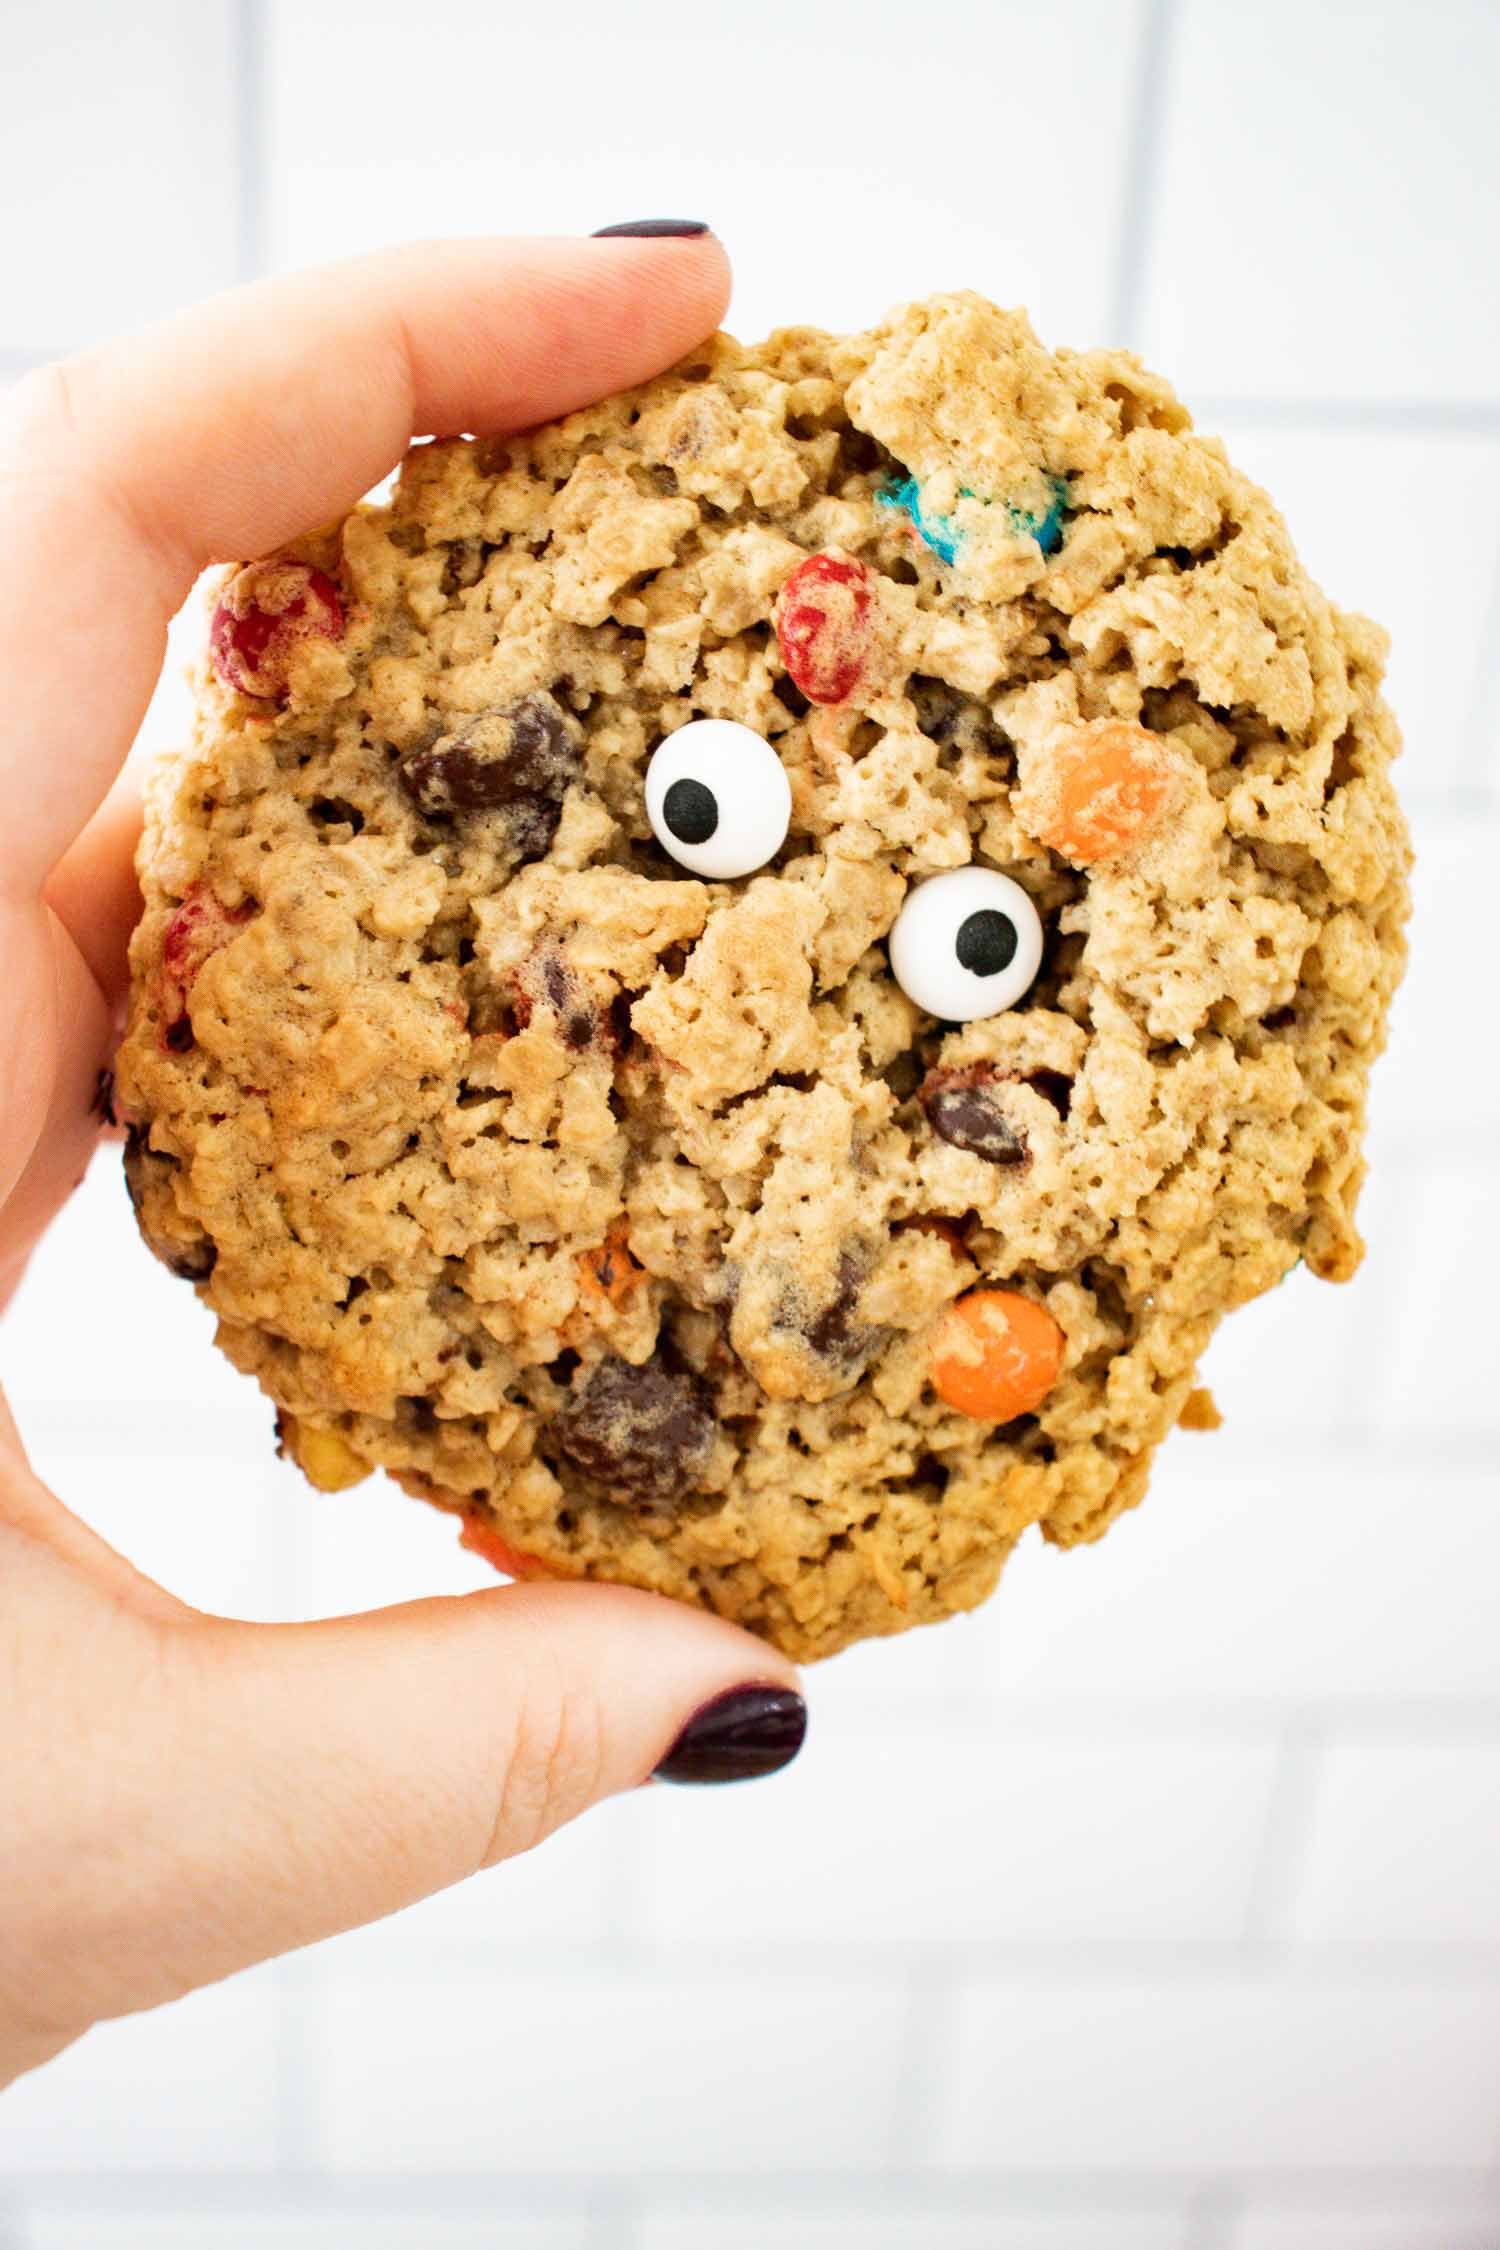 A hand holding a single monster cookie with eyes on it.